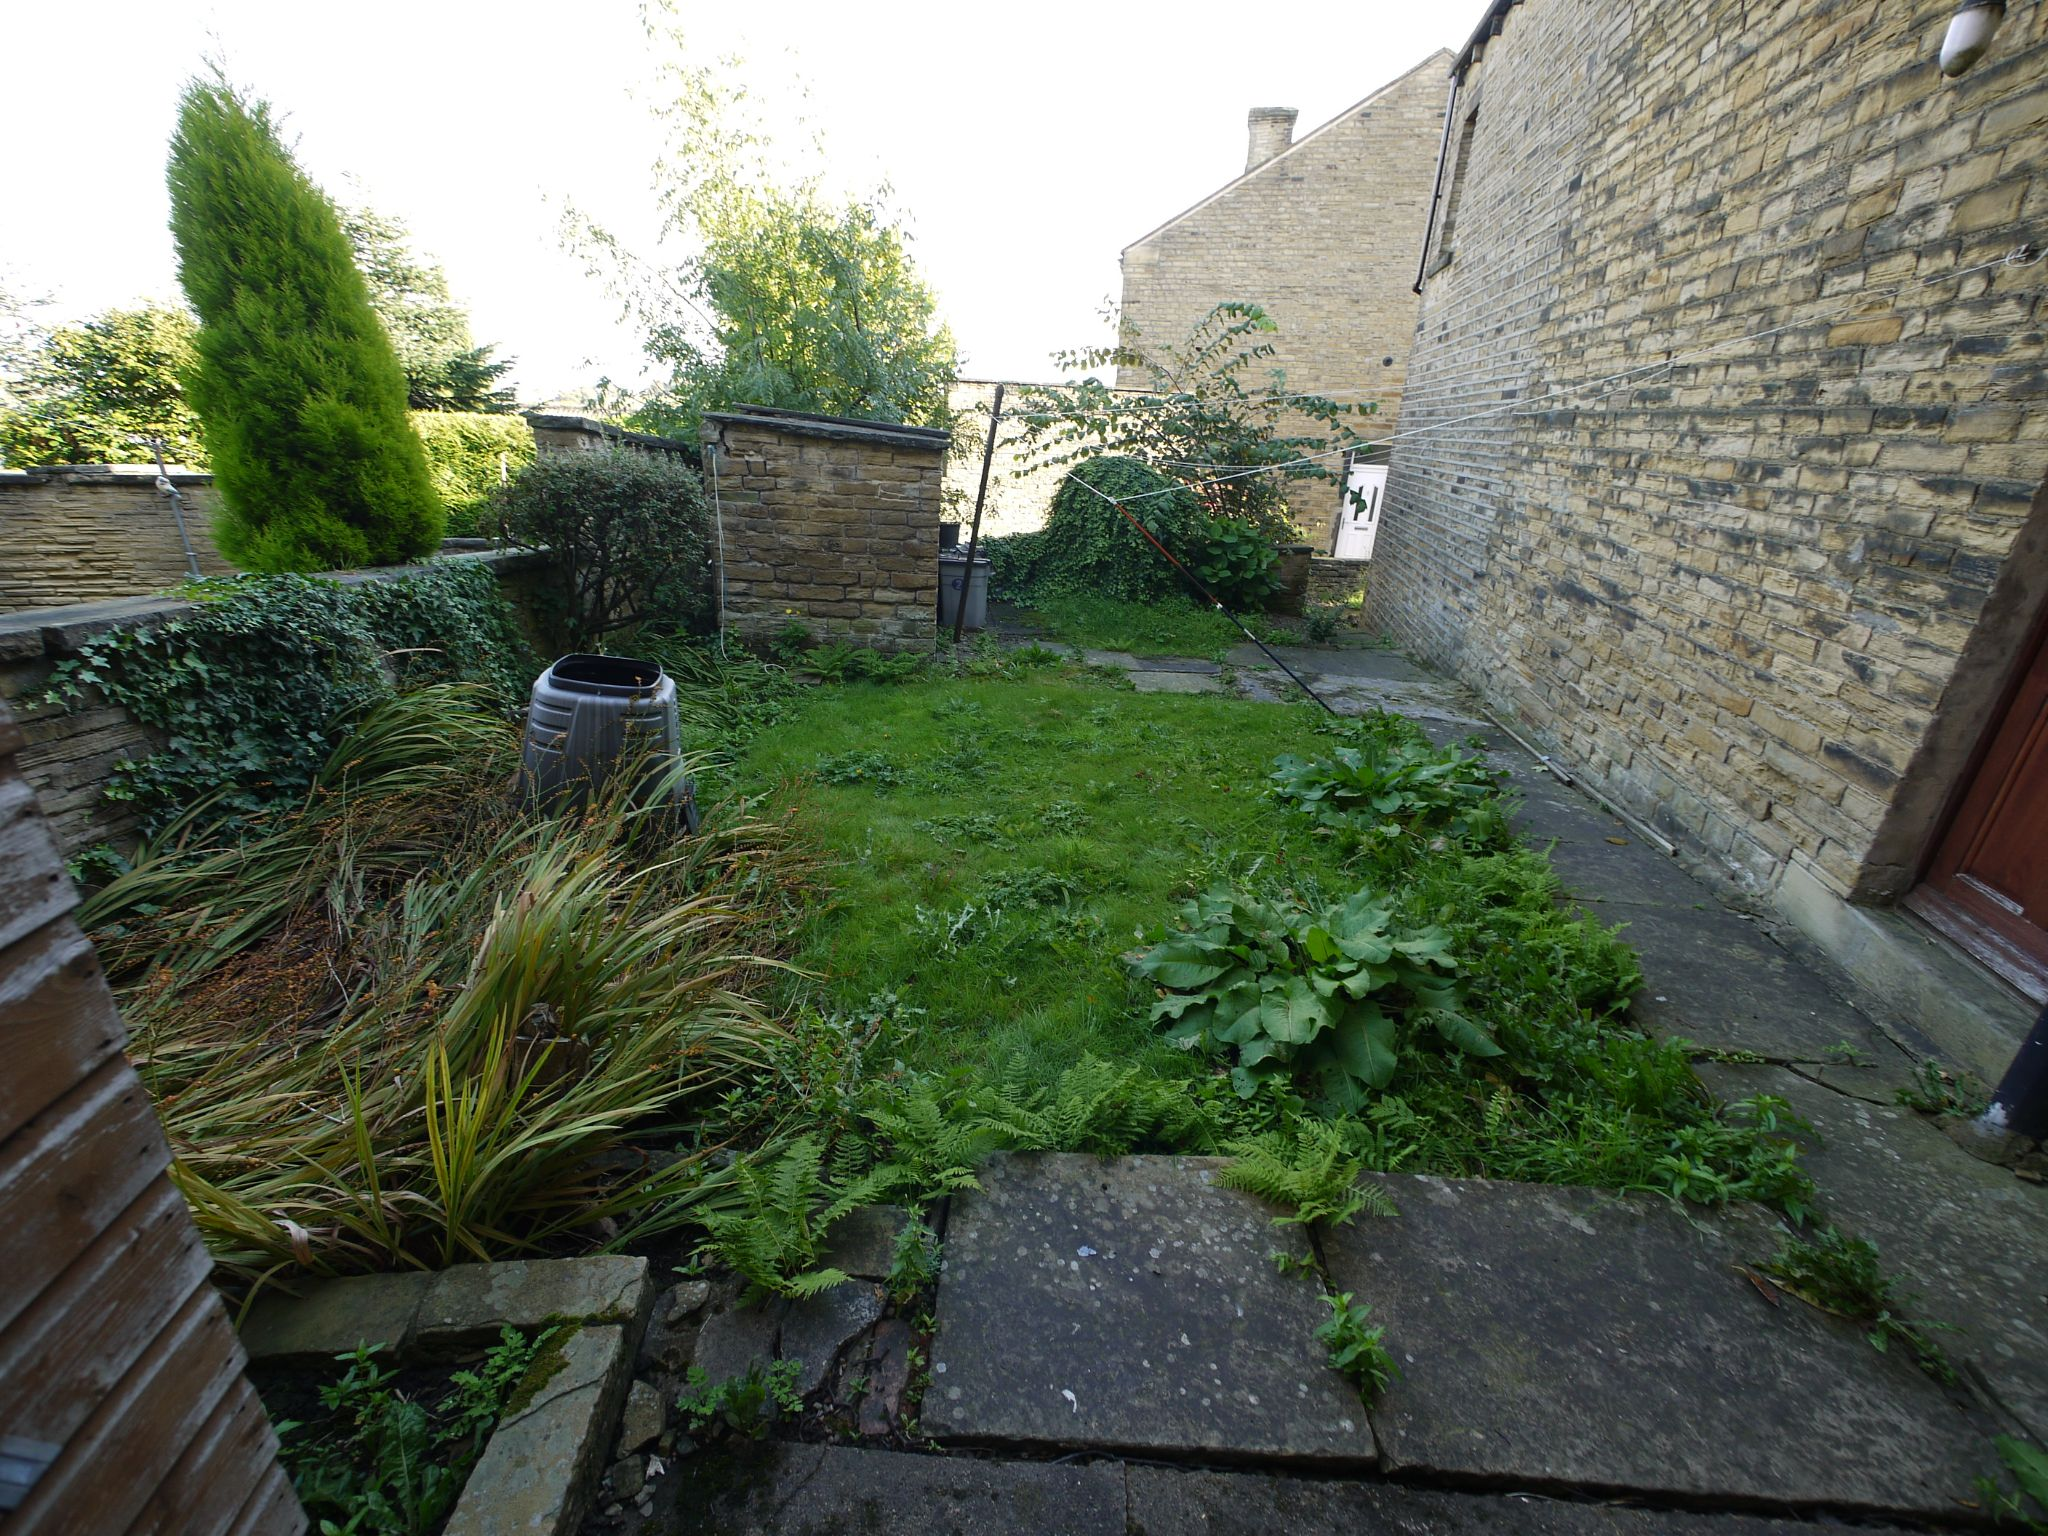 3 bedroom end terraced house SSTC in Brighouse - Garden.